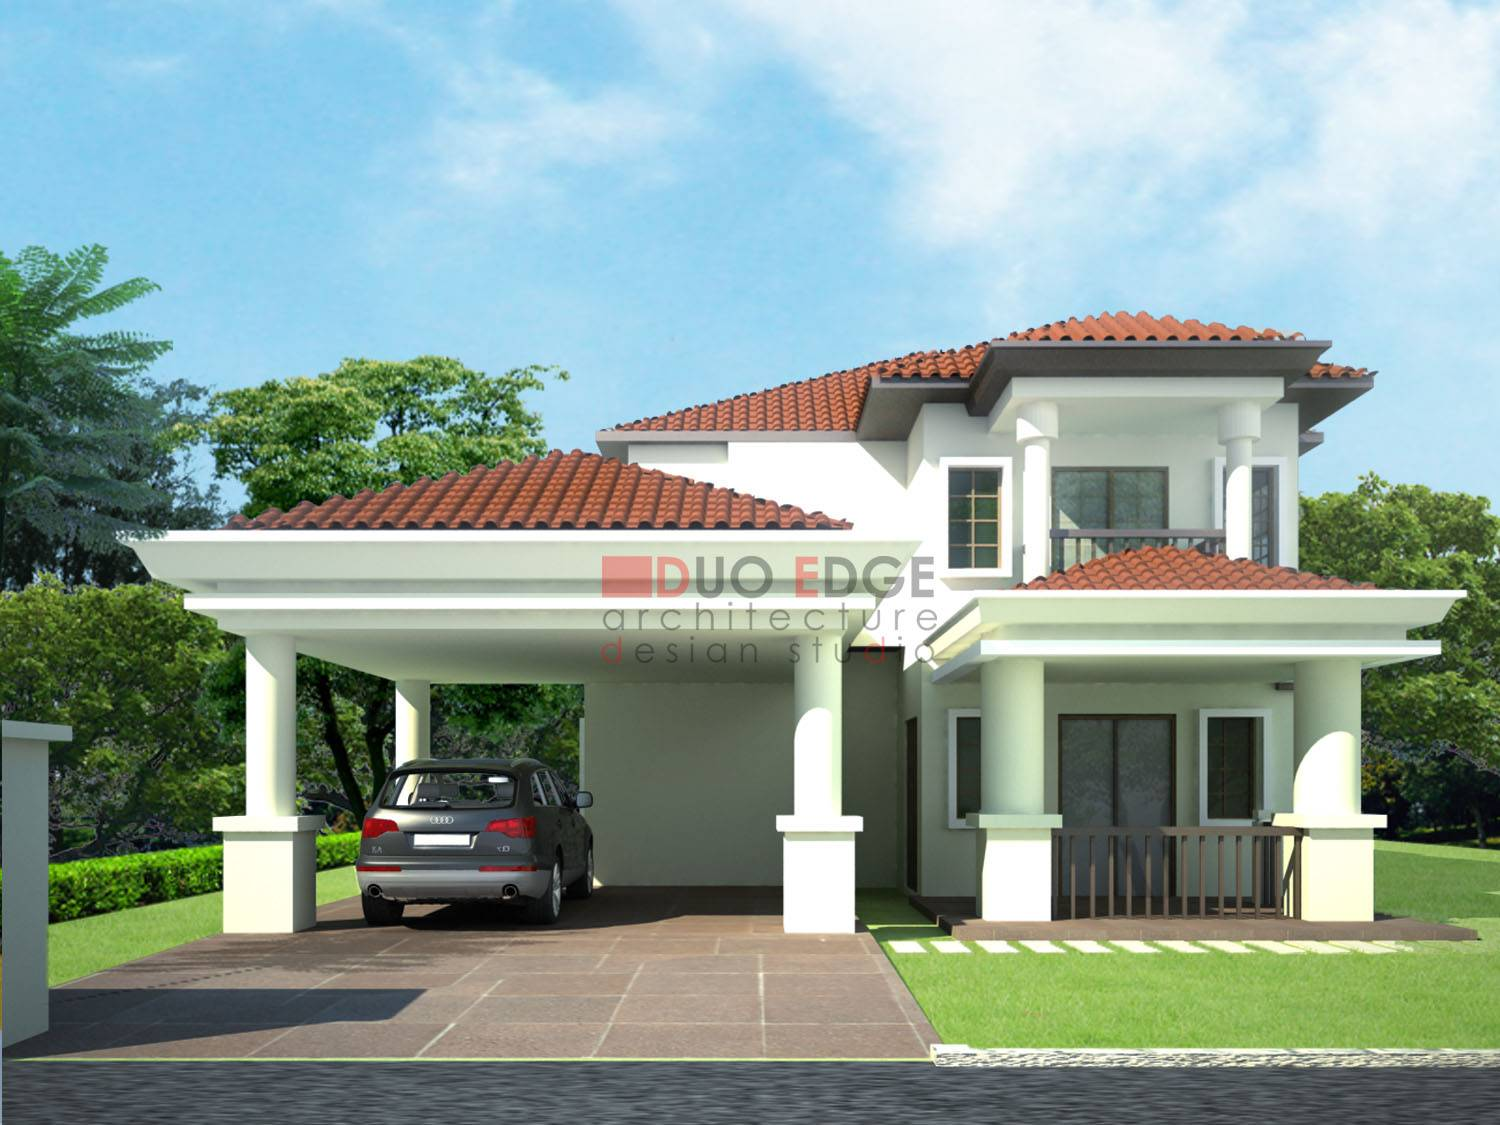 Best bungalow designs in the world modern house for Best home designs